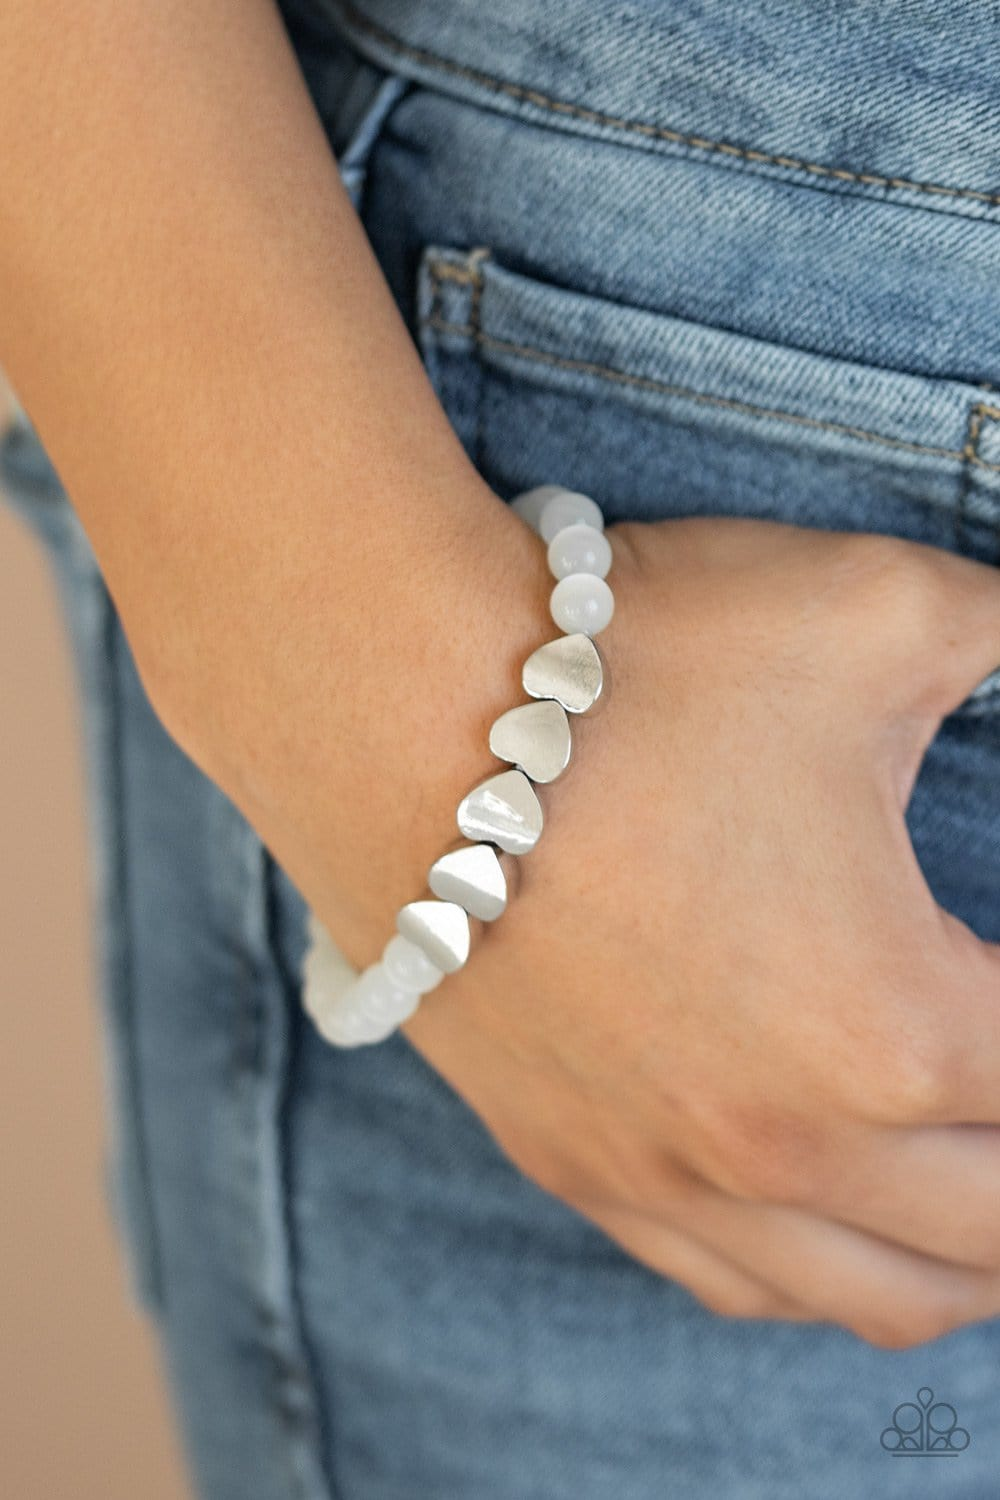 Heart-Melting Glow - White Heart Bracelet: Paparazzi